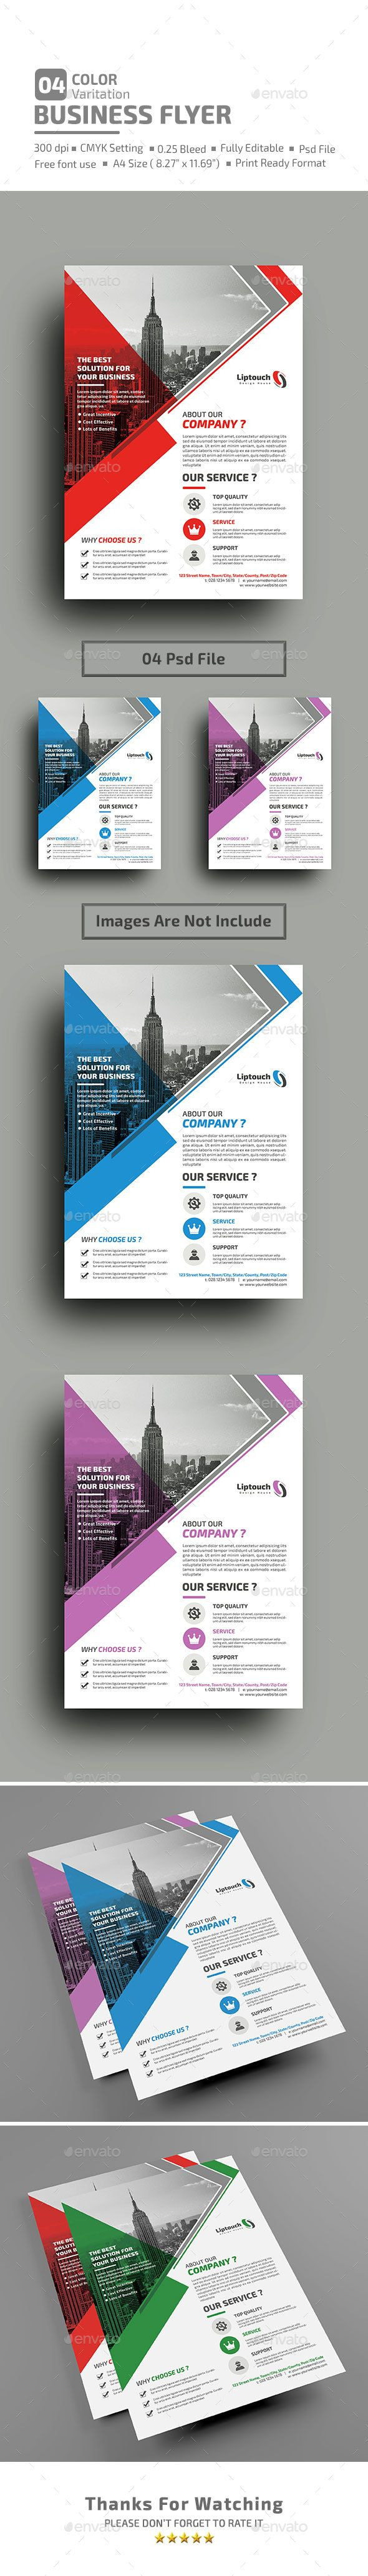 Multipurpose Business Flyer Template PSD. Download here: https://graphicriver.net/item/multipurpose-business-flyer/19015514?ref=ksioks